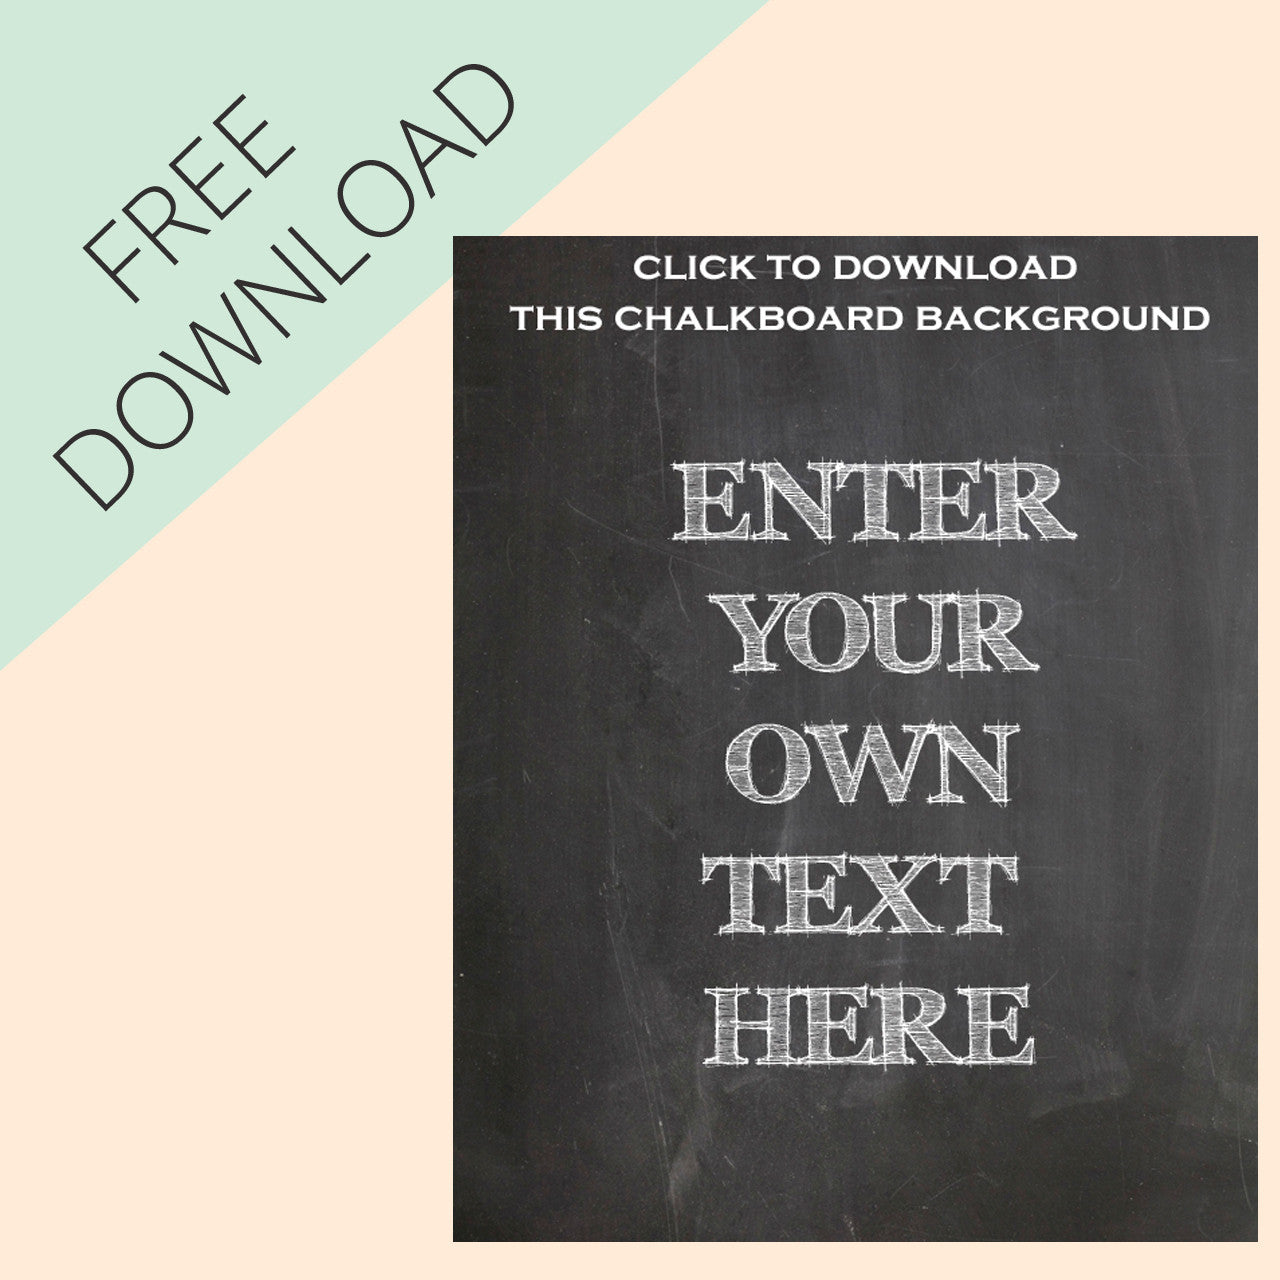 photograph regarding Free Chalkboard Printable titled Produce Your Personal Chalkboard Symptoms - Totally free Printable The